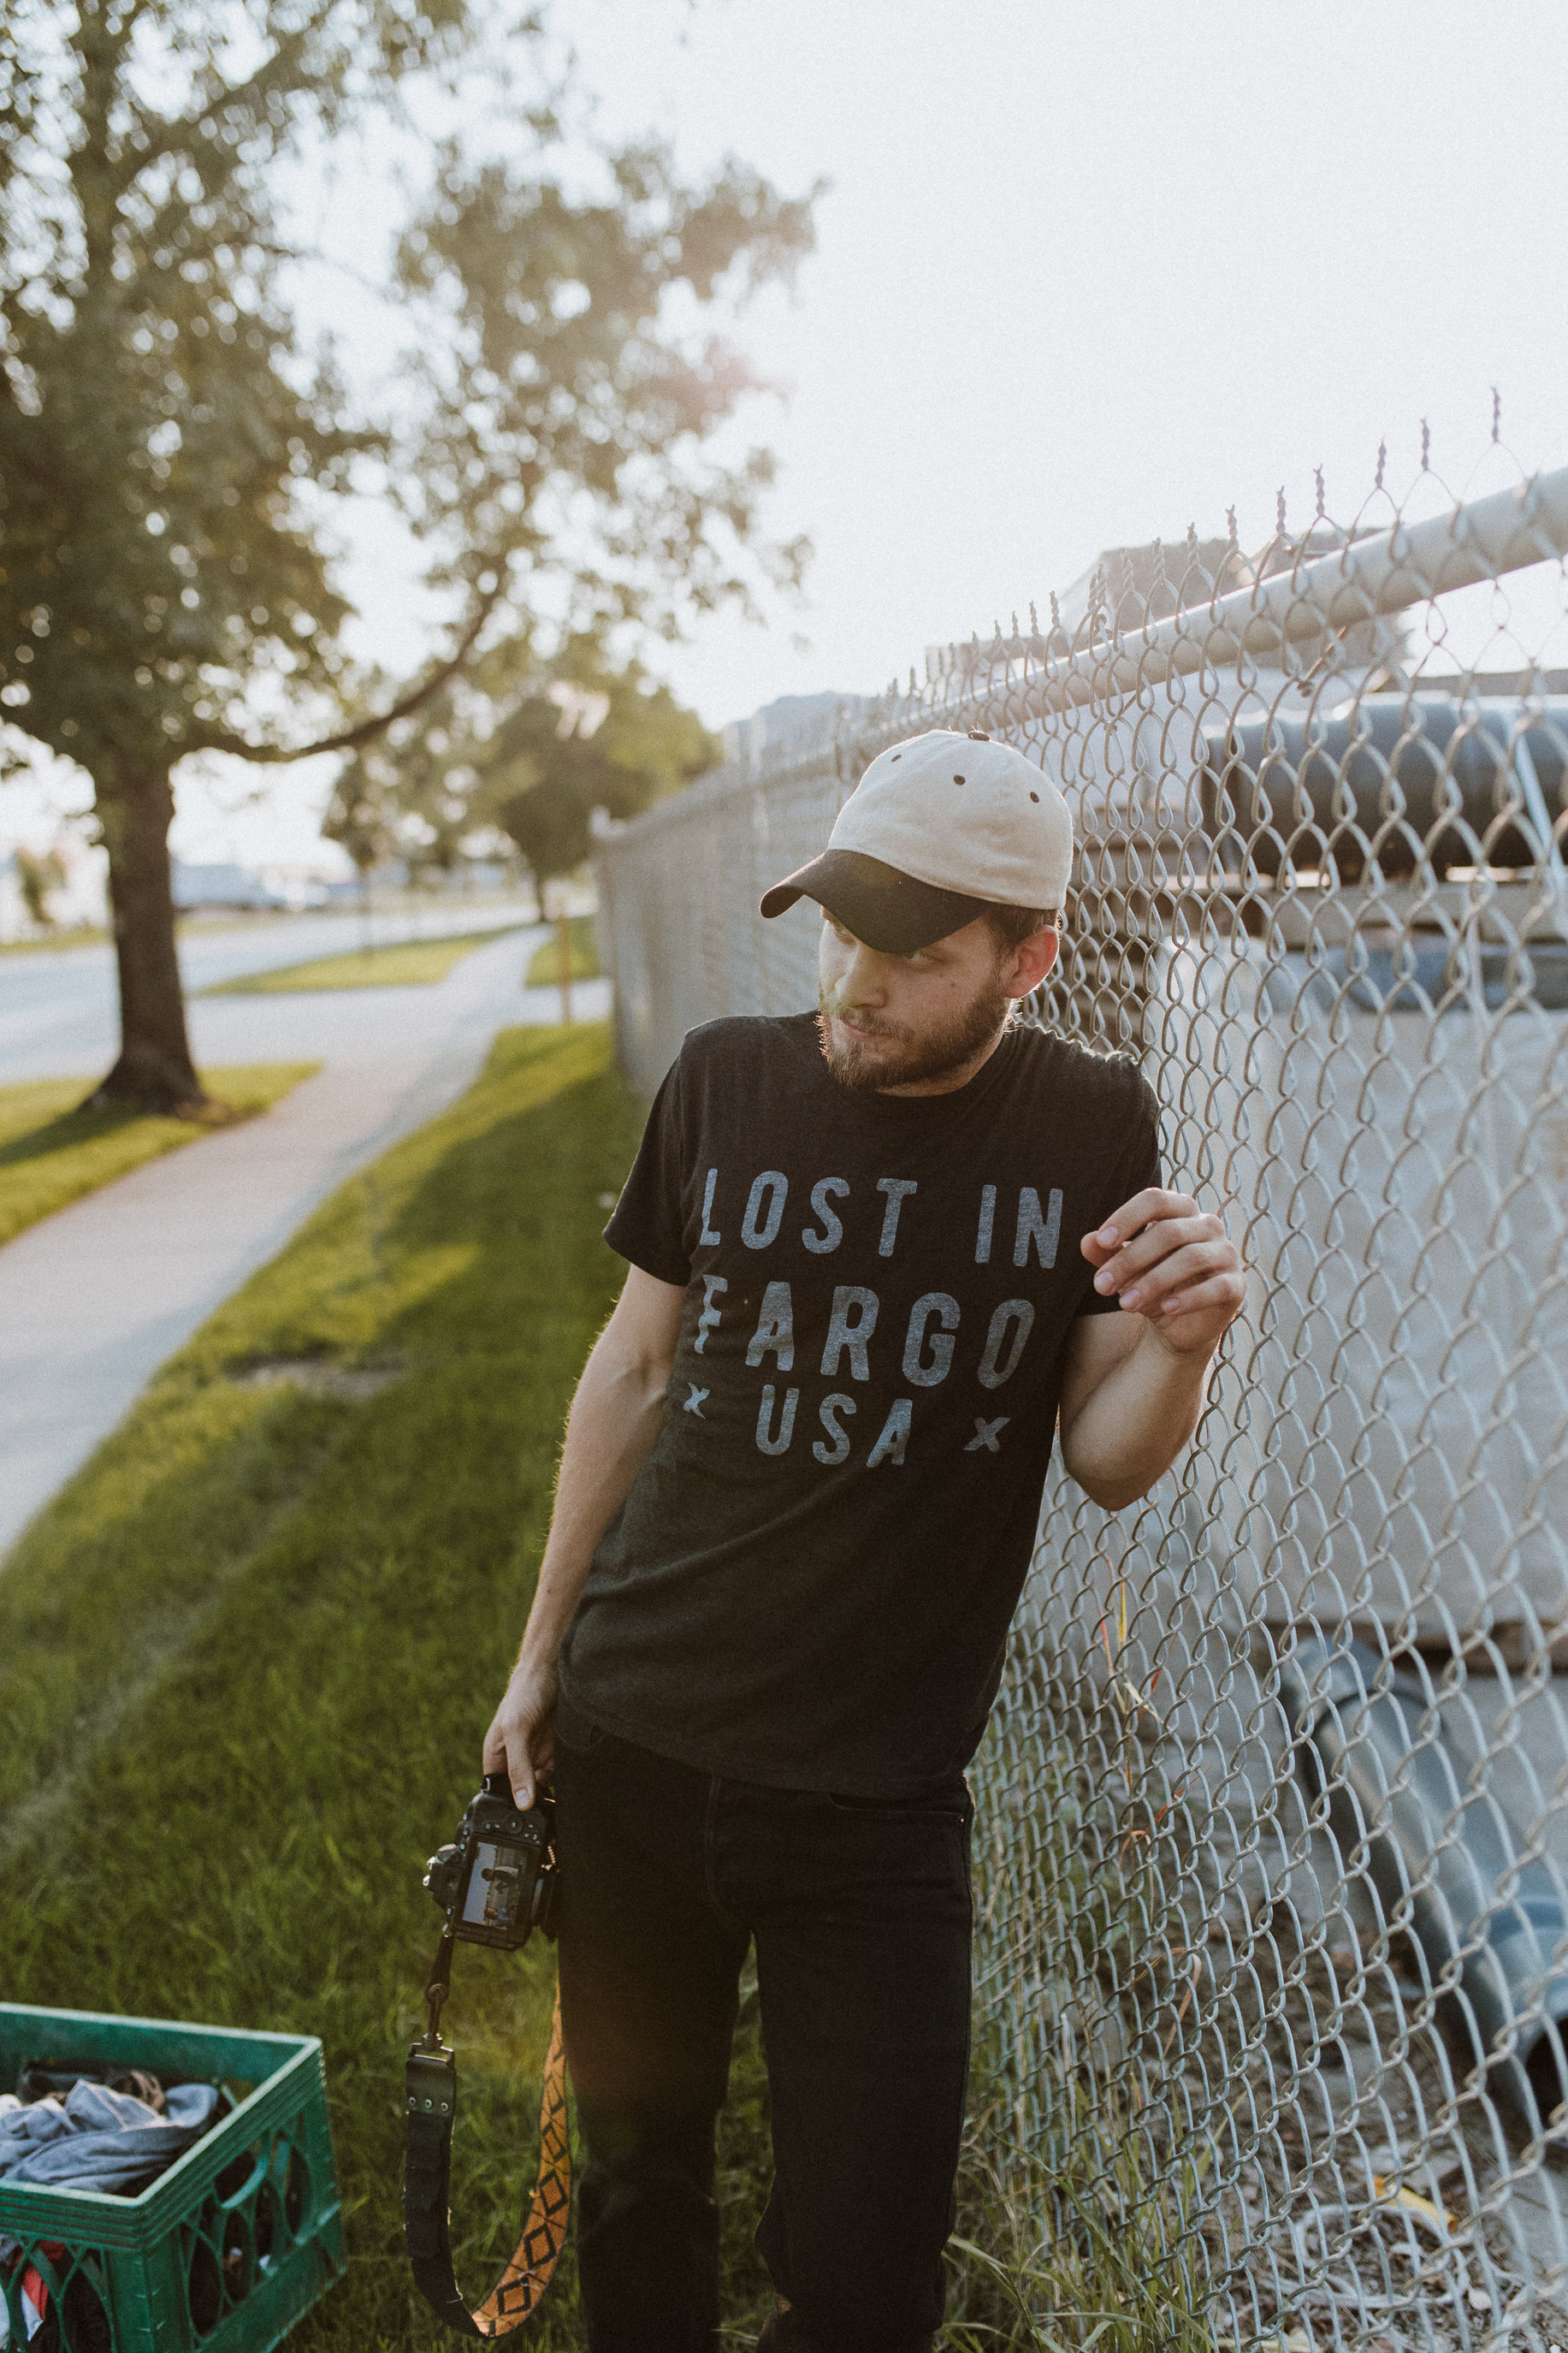 Lost in Fargo was created by Nels Hunstad, a Fargo native and creative. Hire him.nels.hunstad@gmail.com